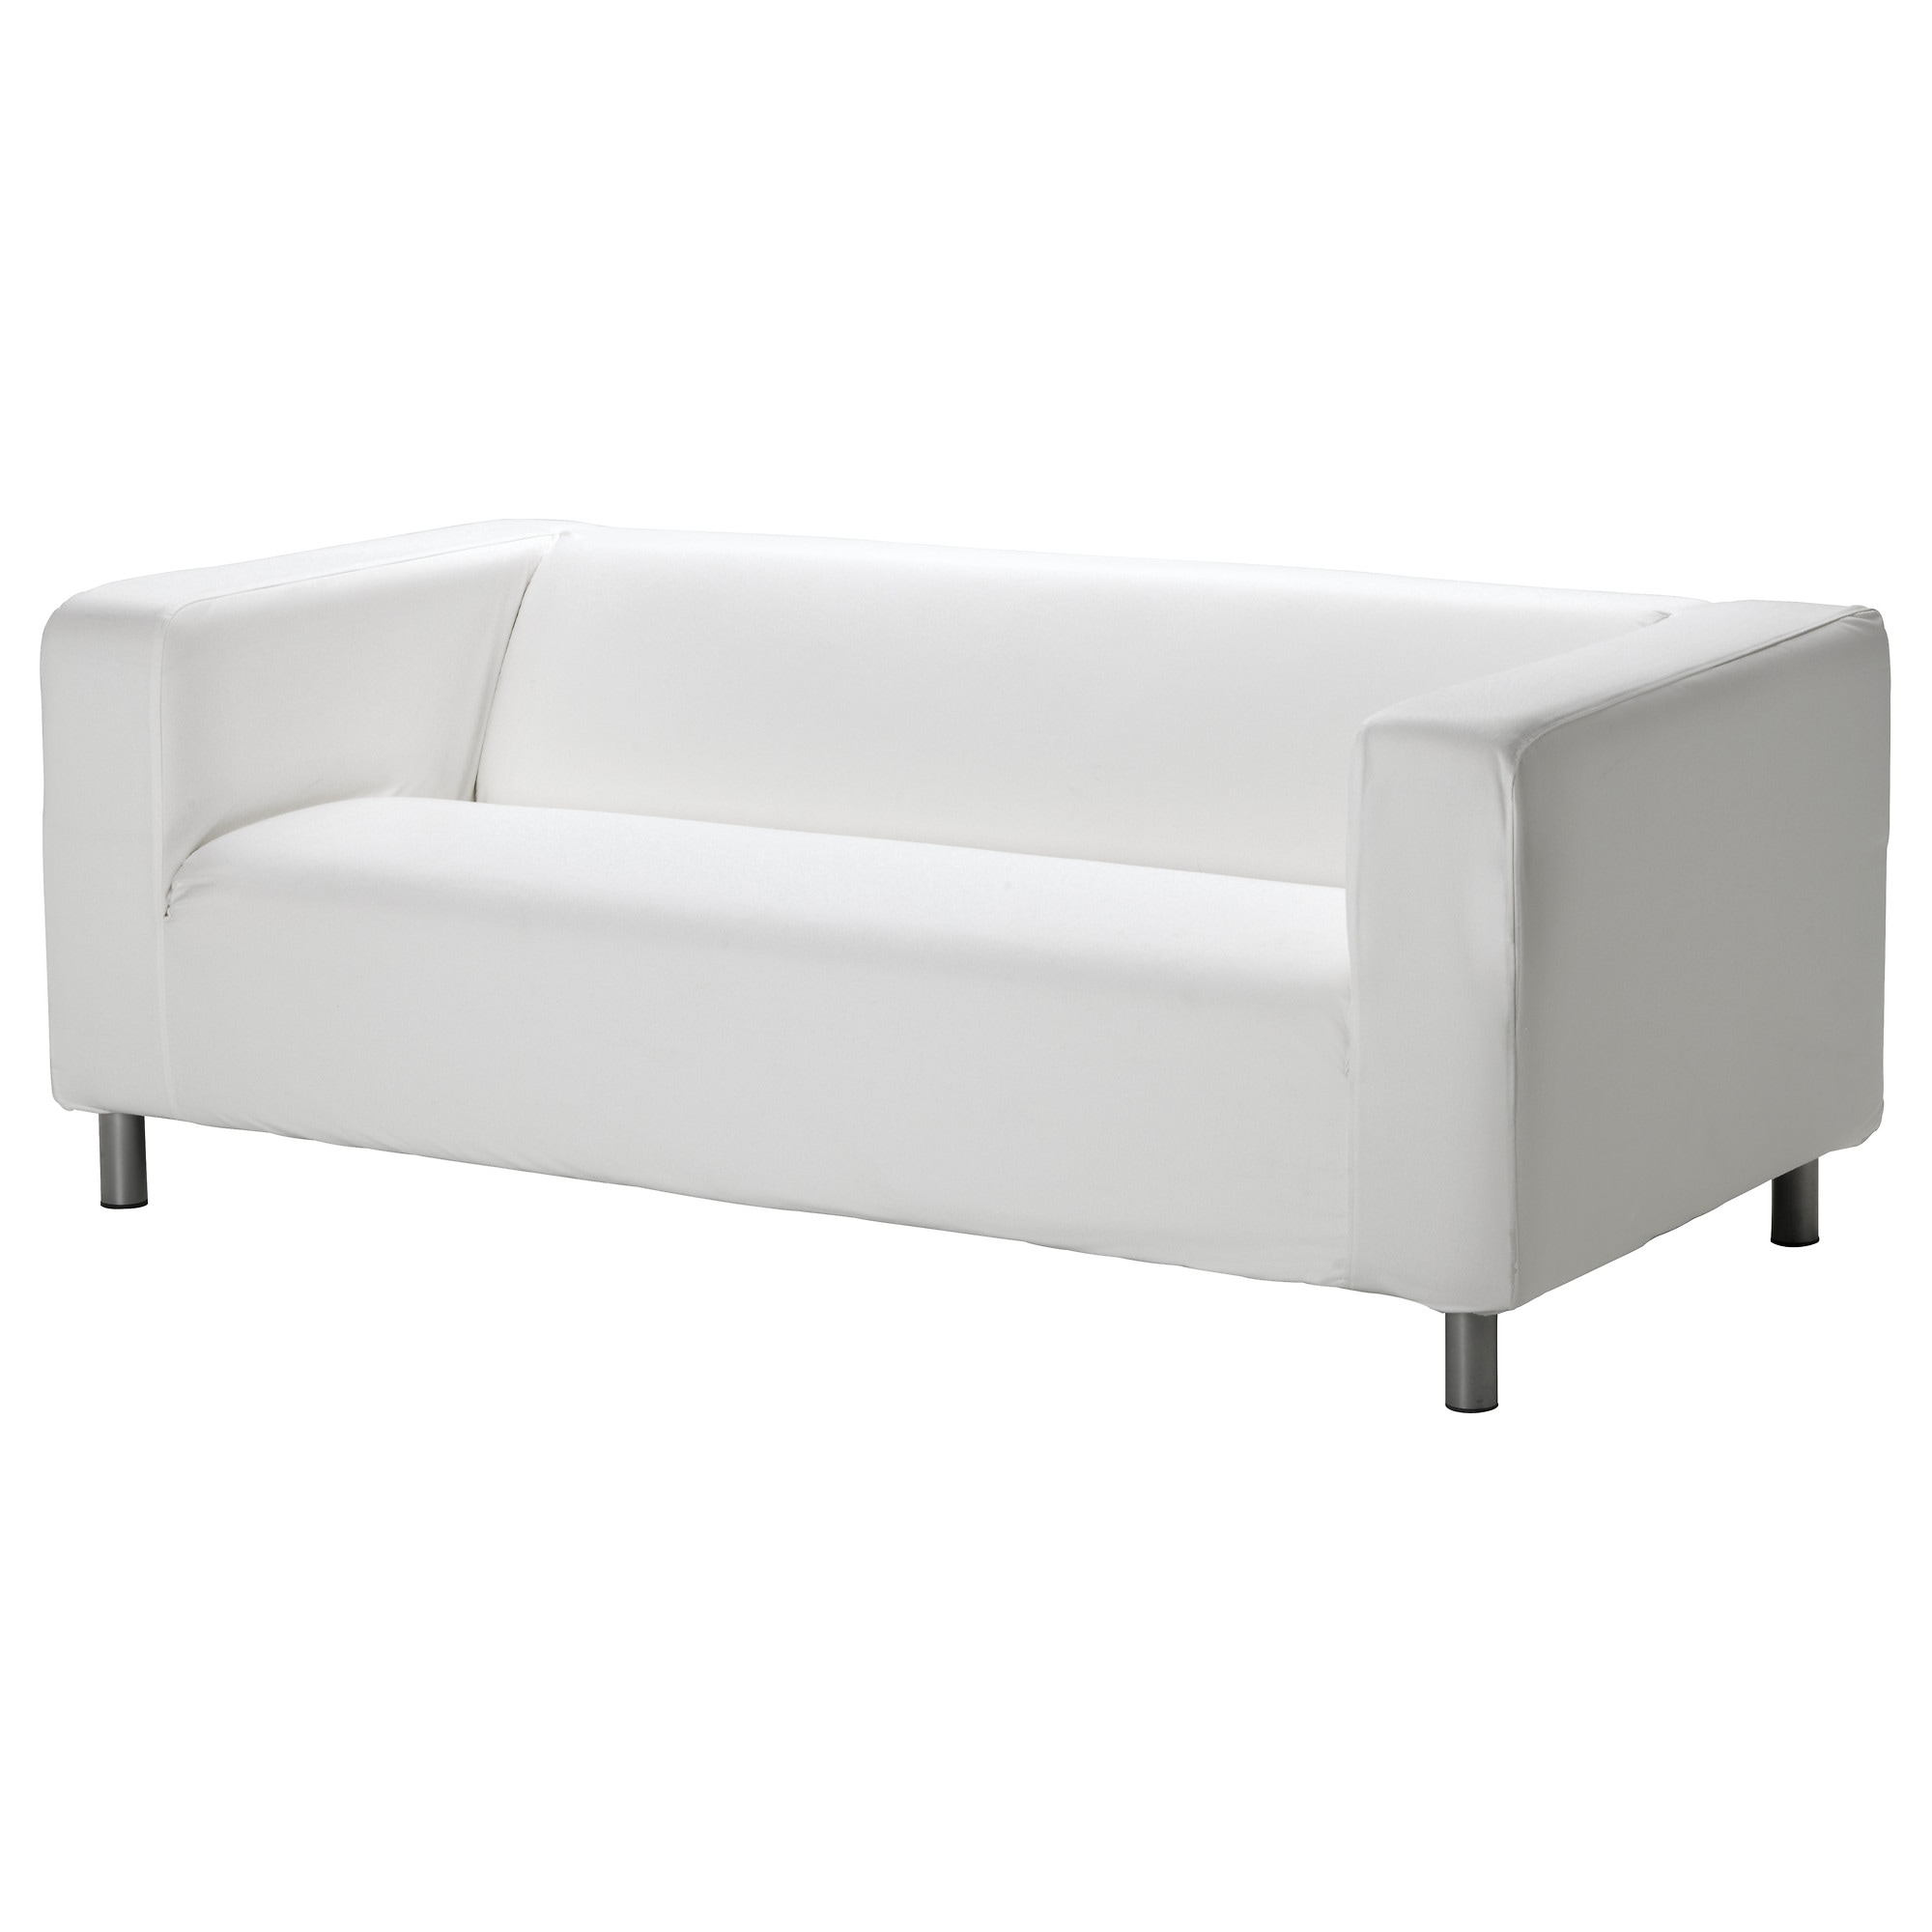 KLIPPAN Loveseat Vissle Gray IKEA - Love seat and sofa